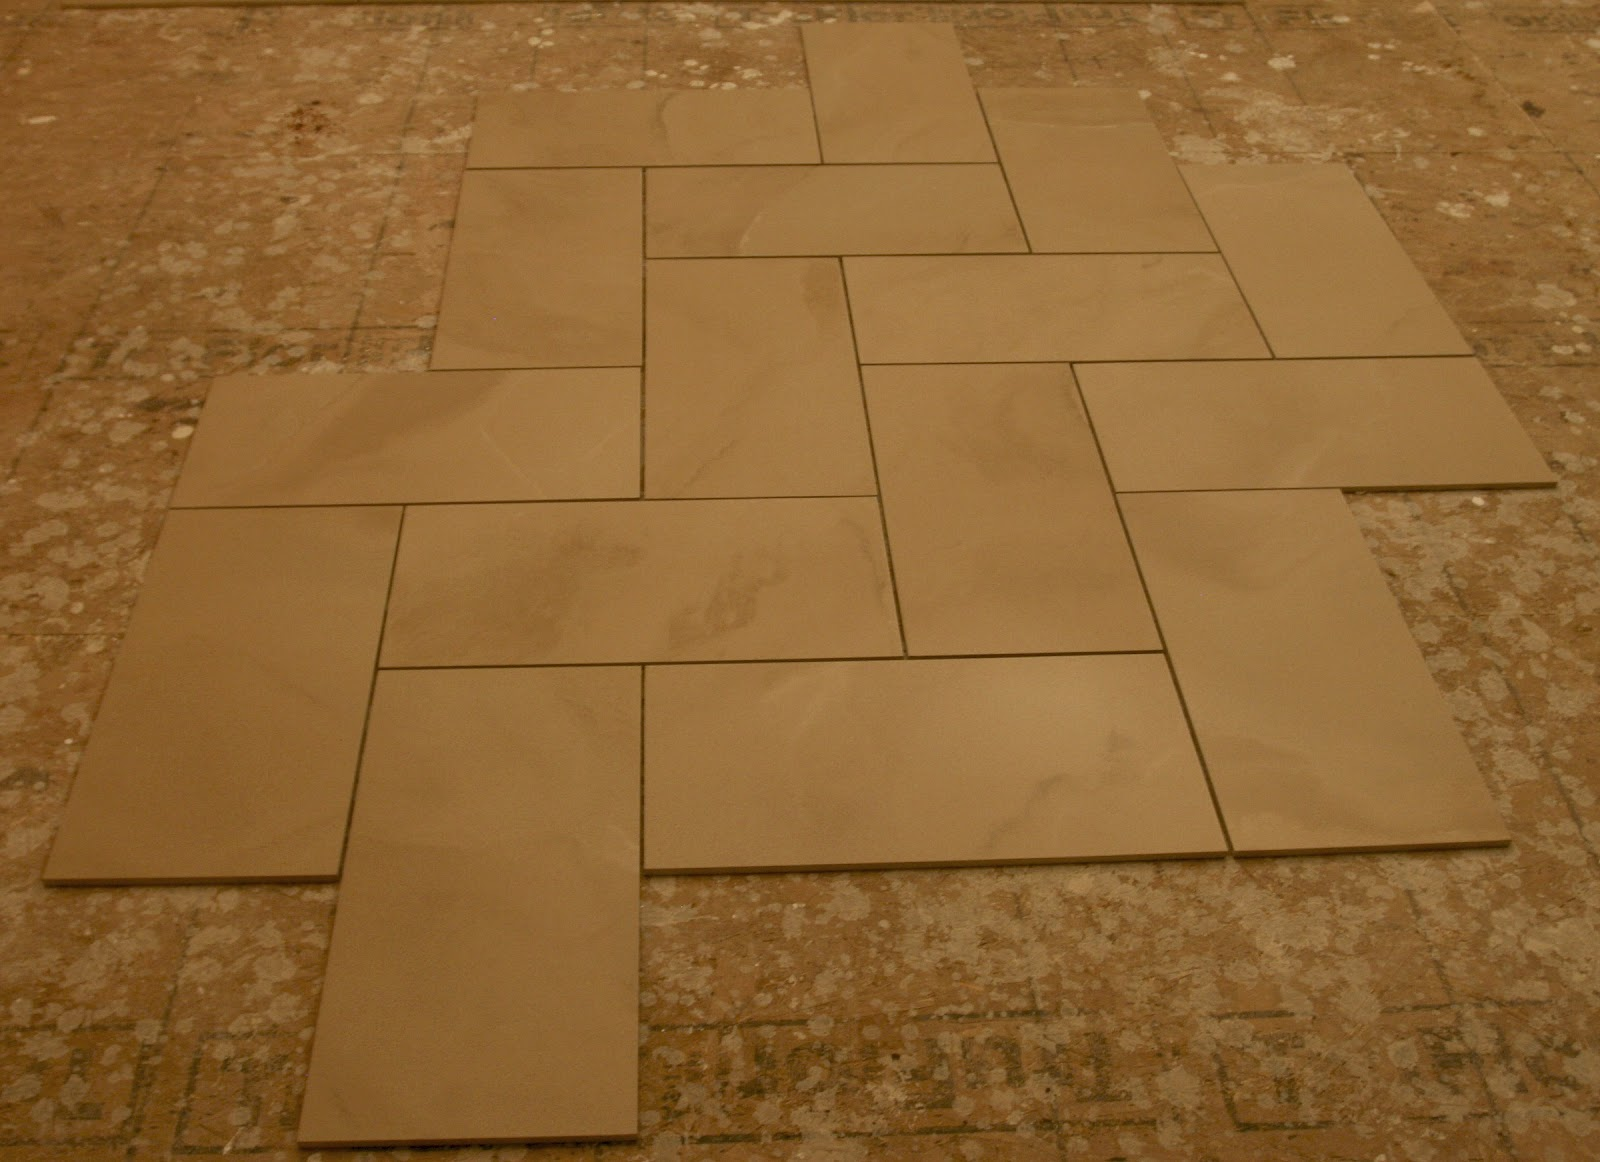 3 tile patterns for floors joy studio design gallery